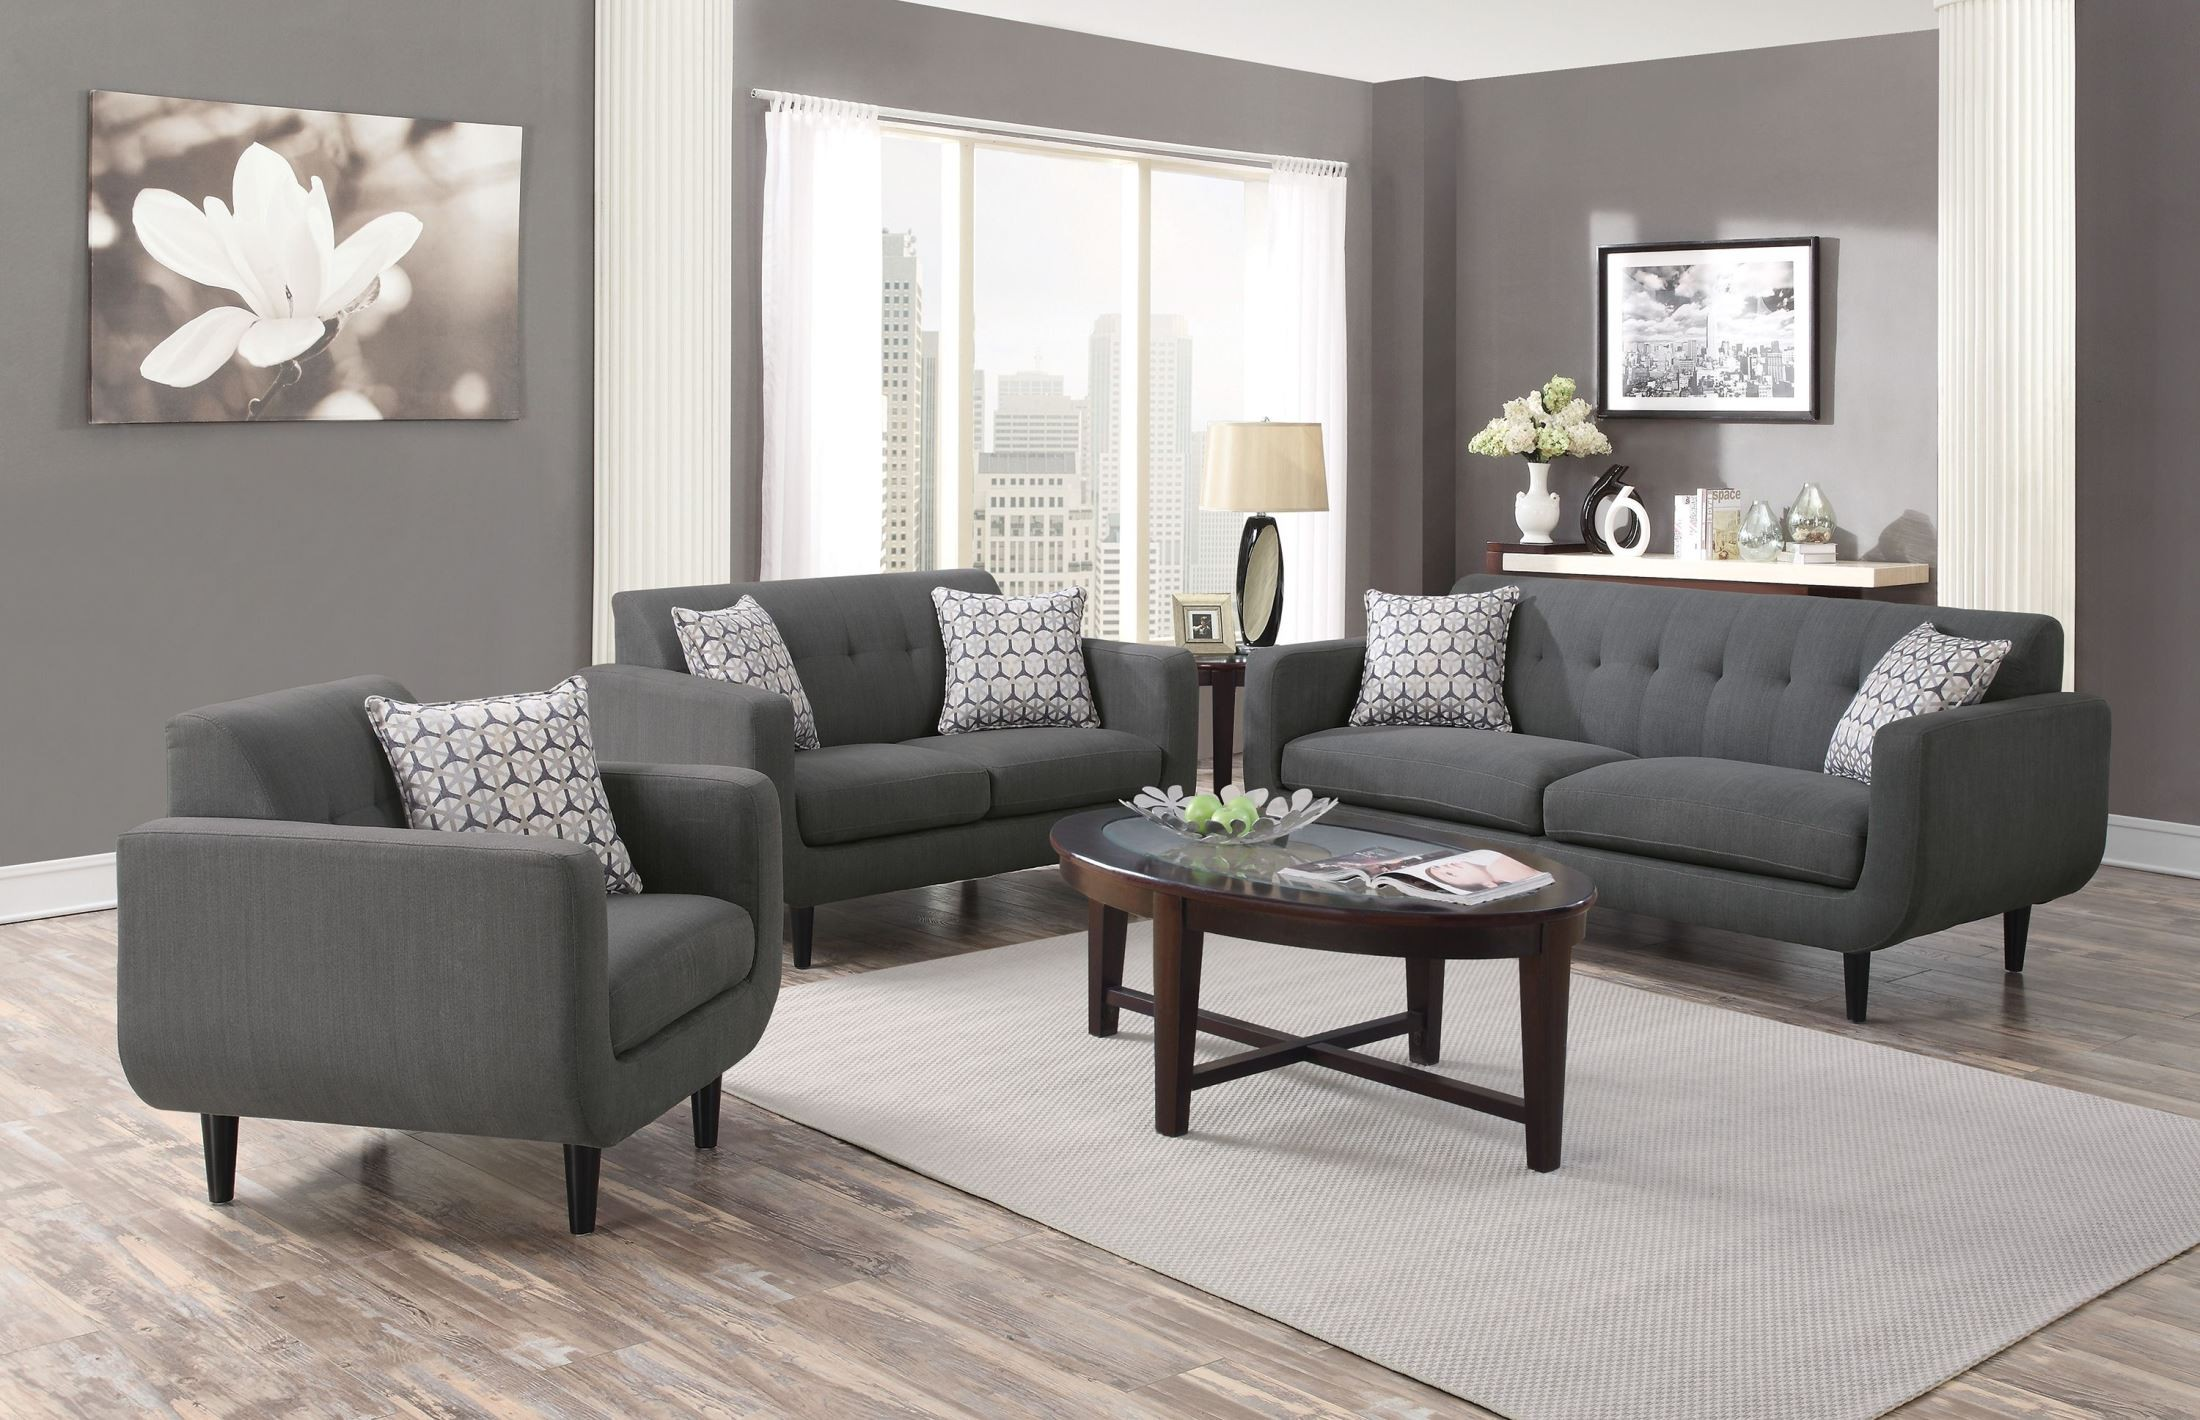 Stansall grey living room set 505201 coaster for Living room furniture images